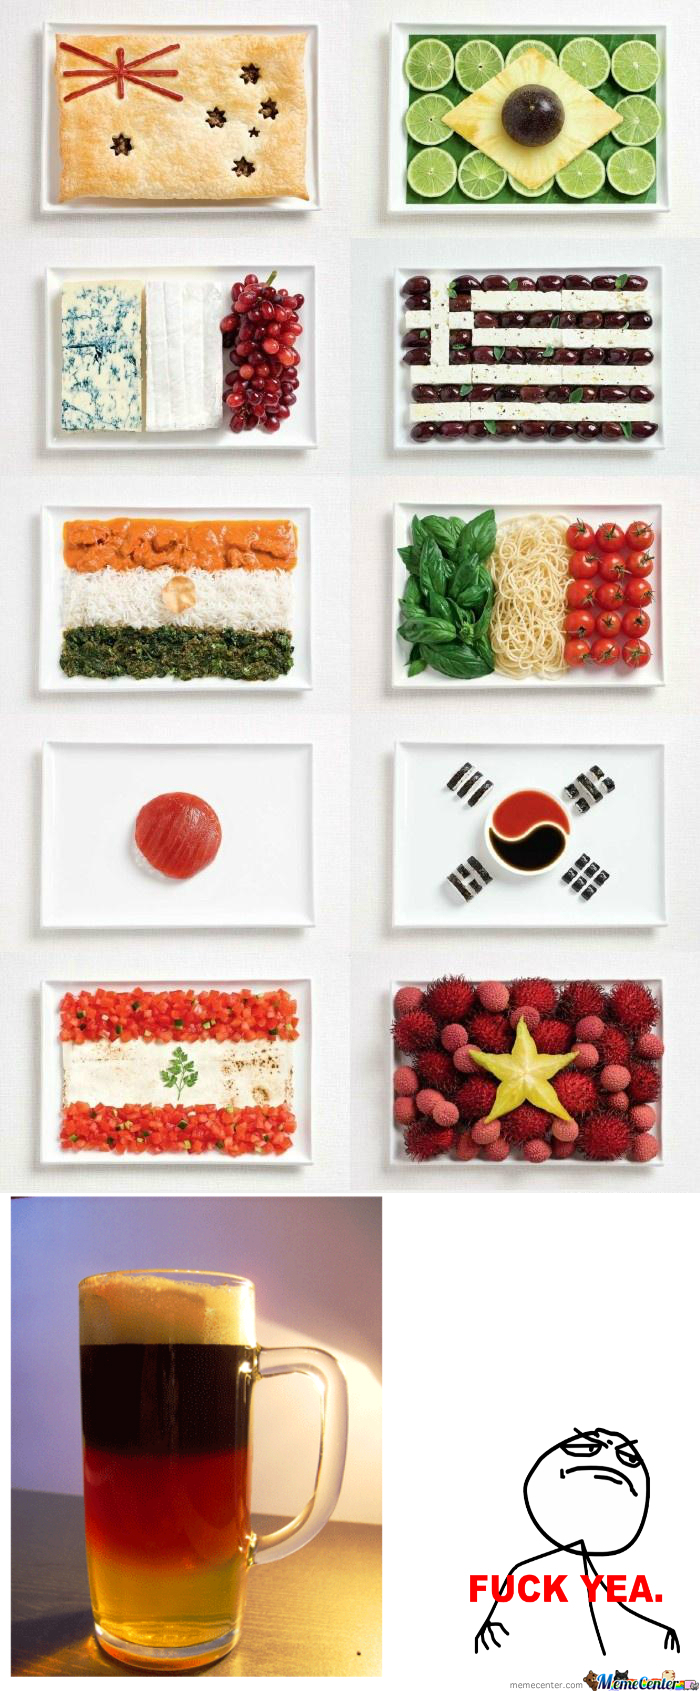 [RMX] Flags & Food.